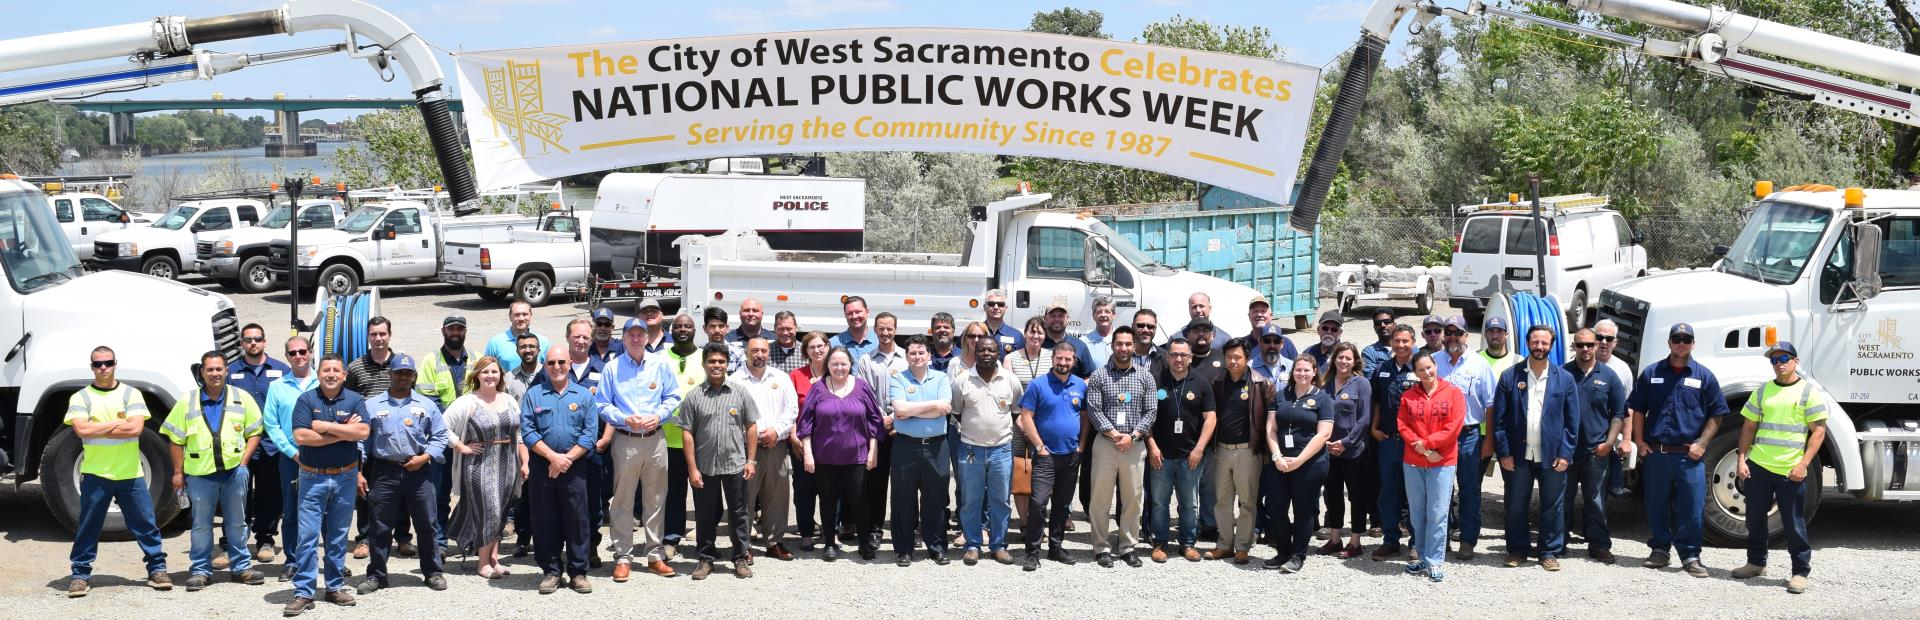 national public works week group photo